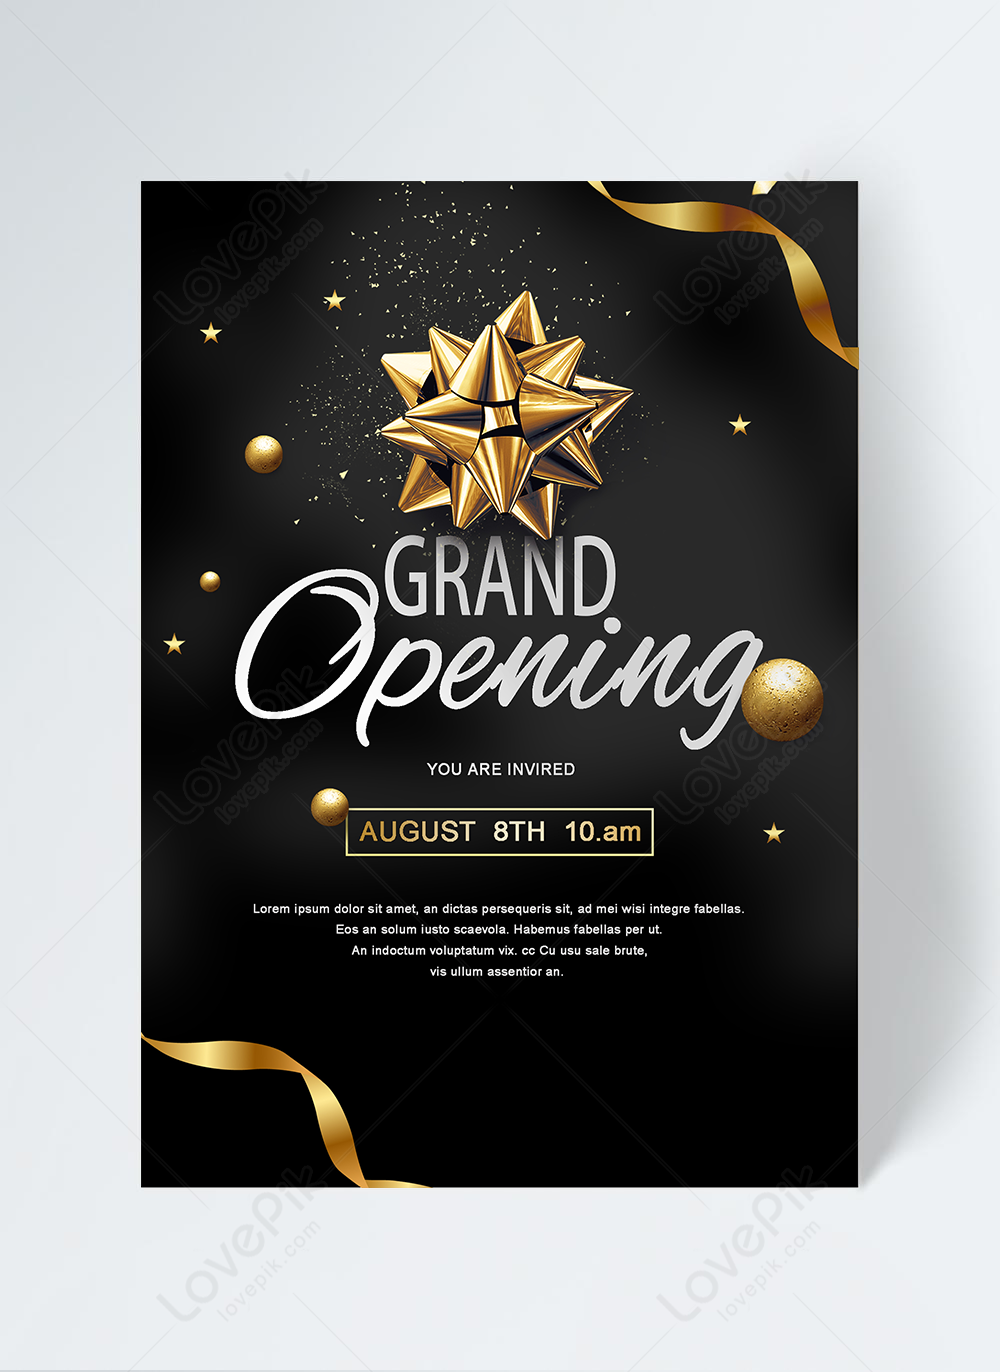 Grand opening poster black gold invitation template template image_picture  free download 465008663_lovepik.com